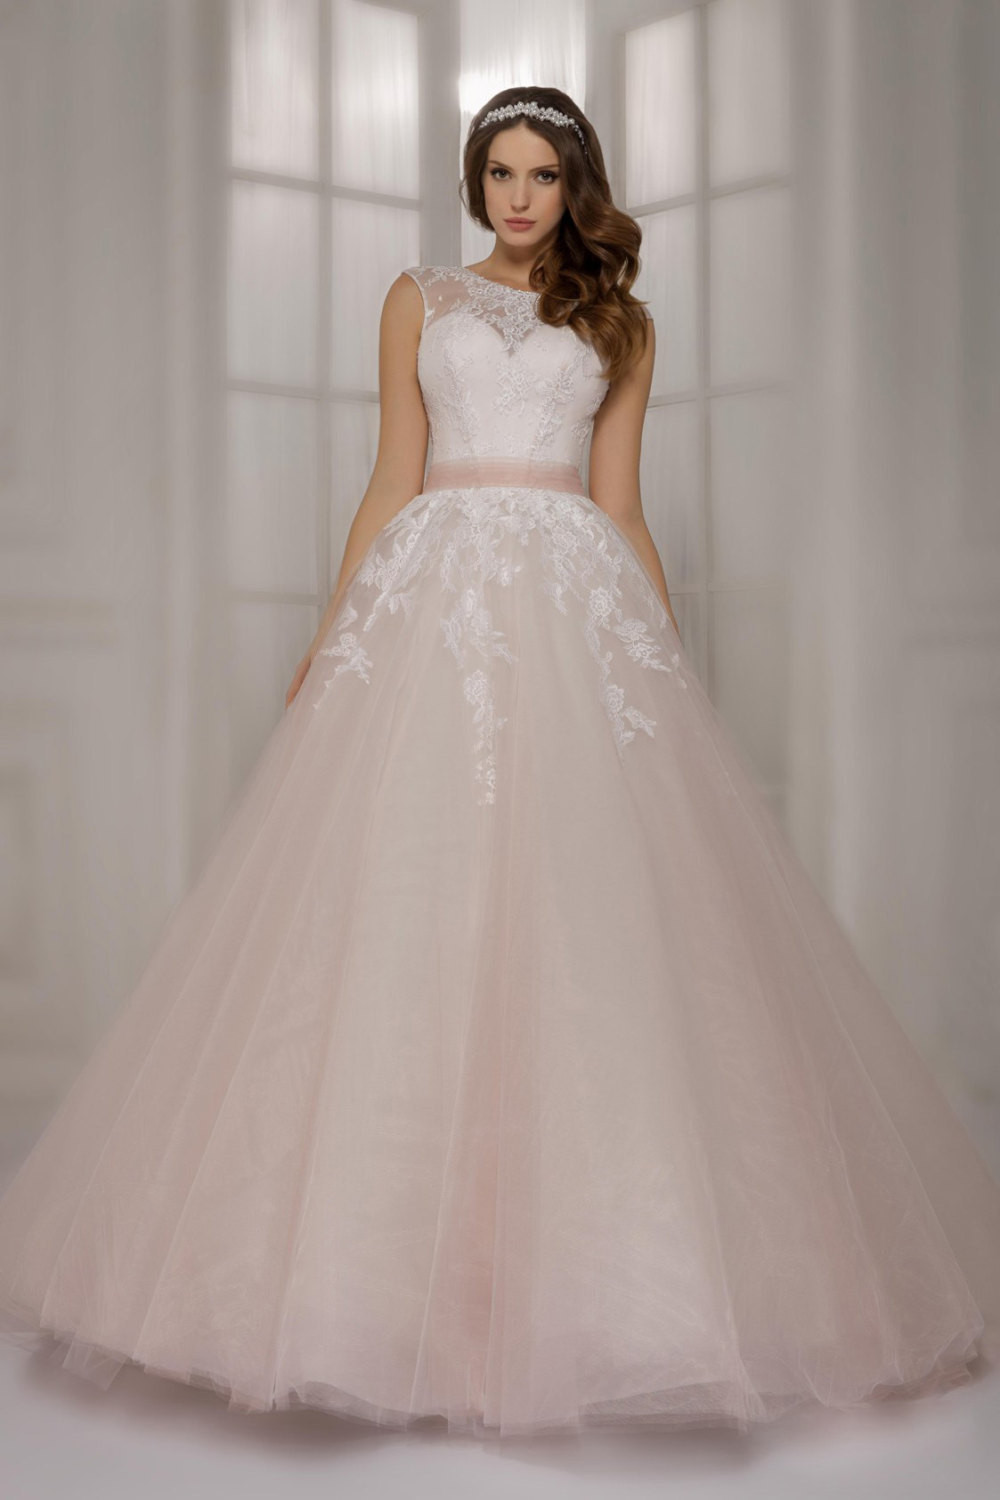 Pink Gowns Dress For Weddings  Aliexpress Buy Newest light pink lace ball gowns